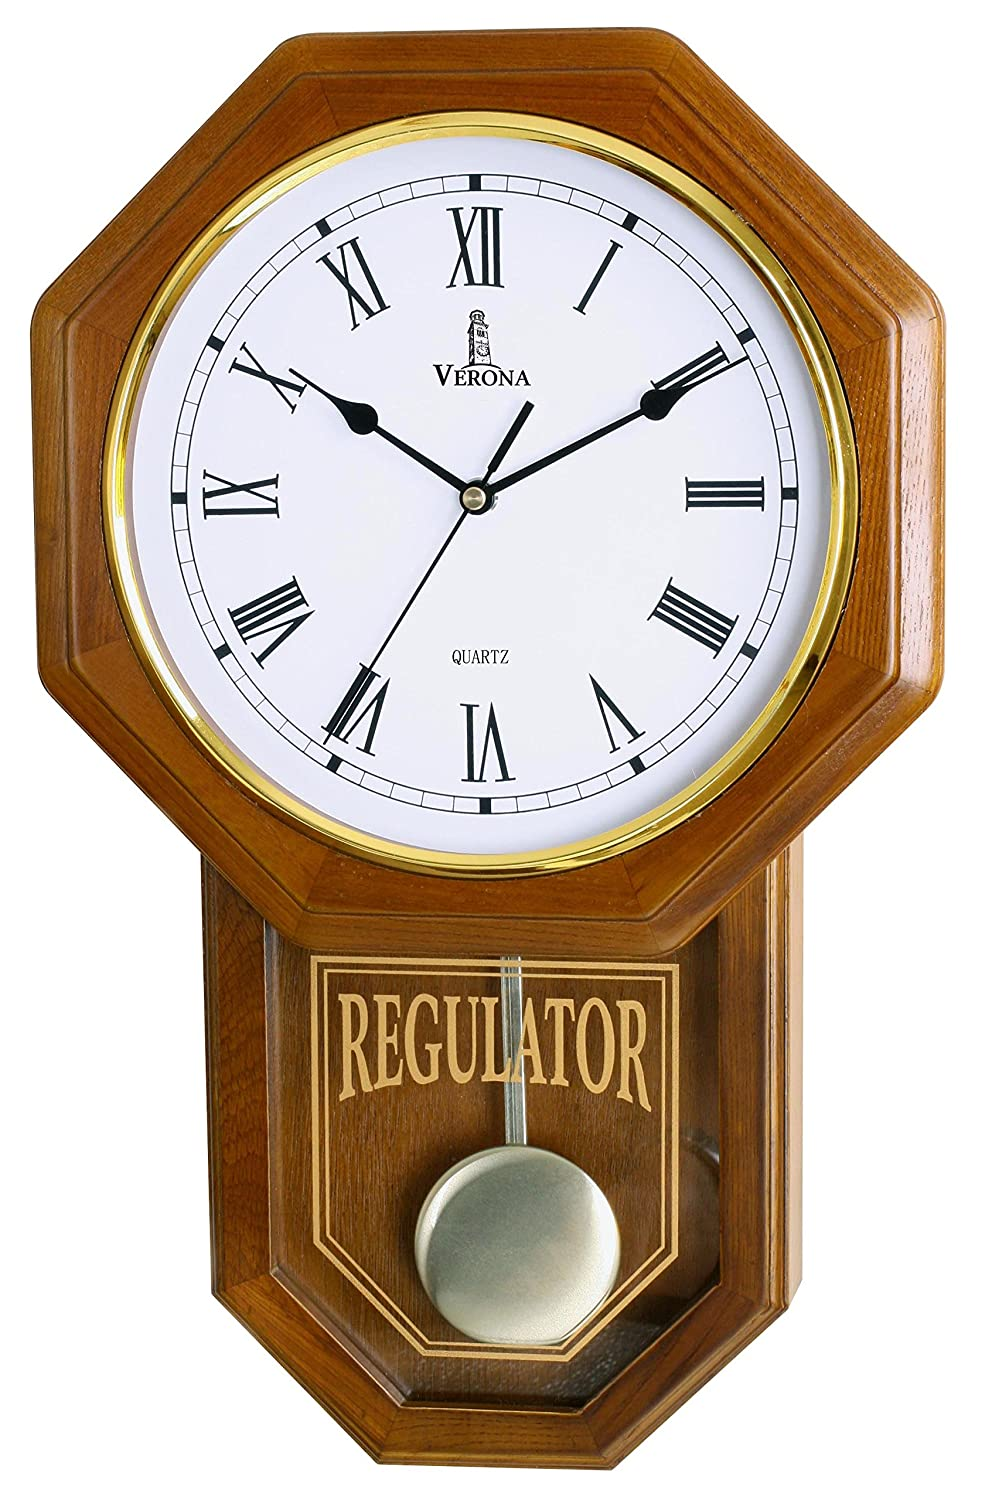 "Best Pendulum Wall Clock, Silent Decorative Wood Clock with Swinging Pendulum, Battery Operated, Schoolhouse Regulator Light Wooden Design, For Living Room, Kitchen & Home Décor, 18"" x 11.25"""